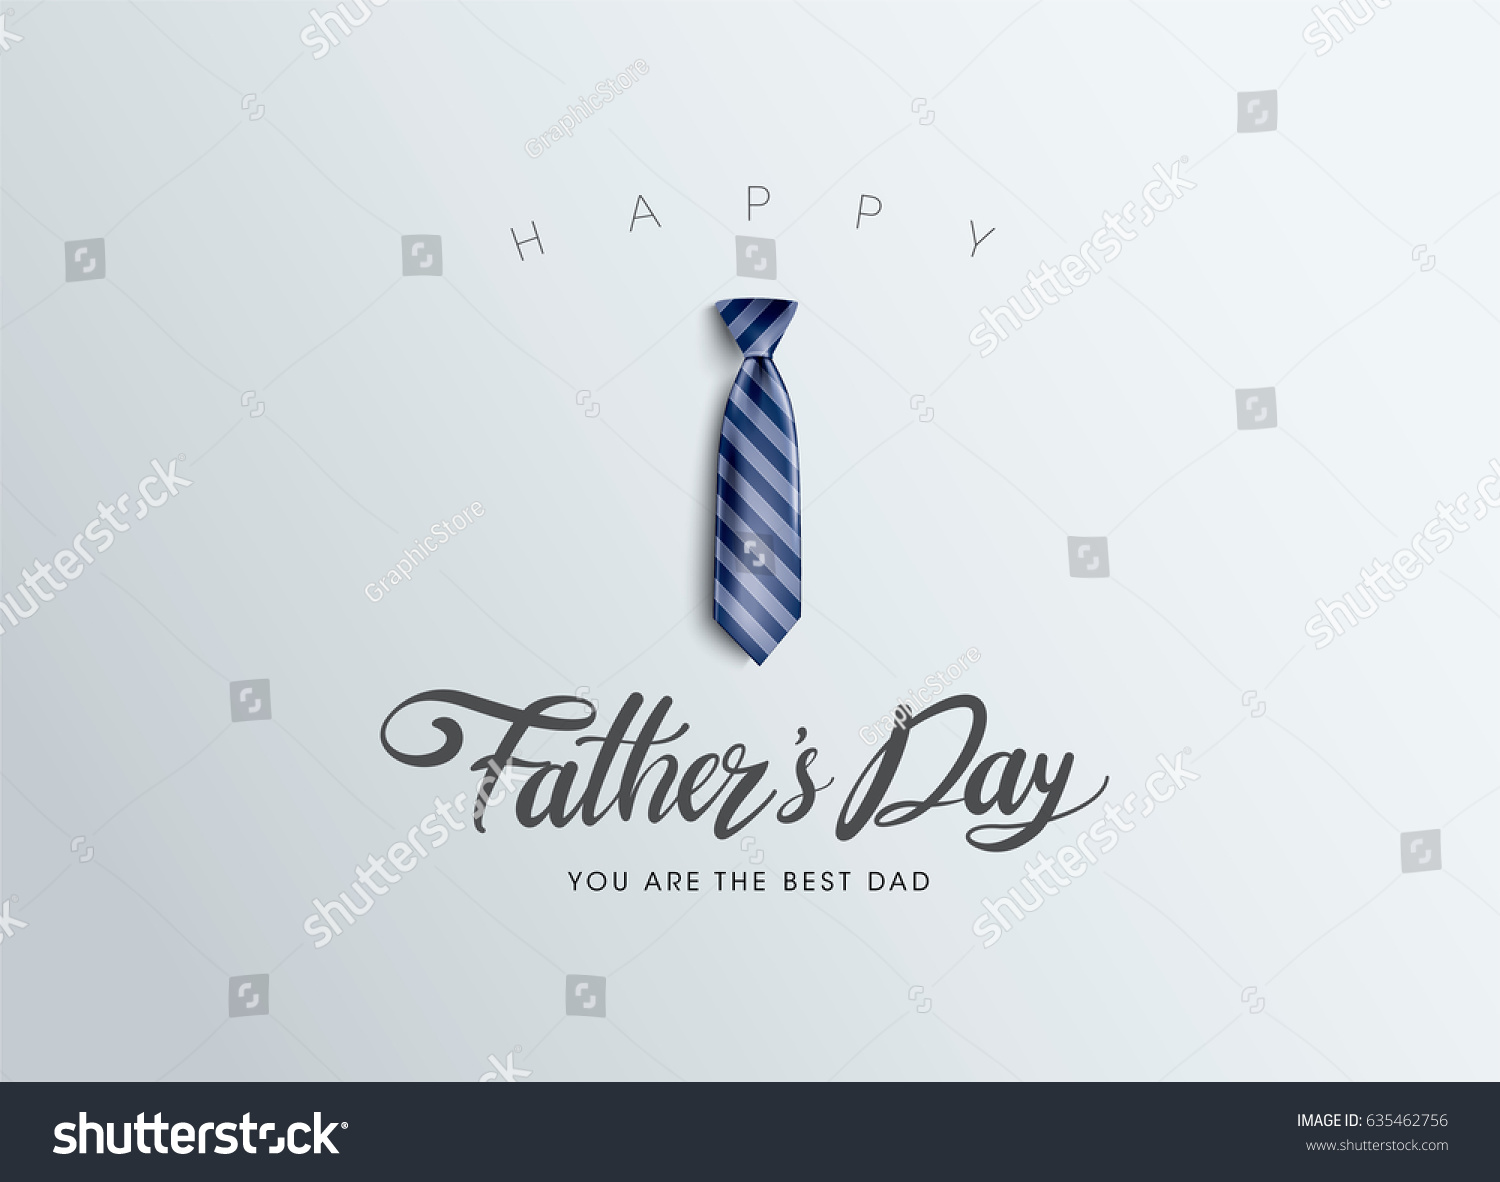 Happy Father's Day Calligraphy greeting card. Vector illustration. #635462756